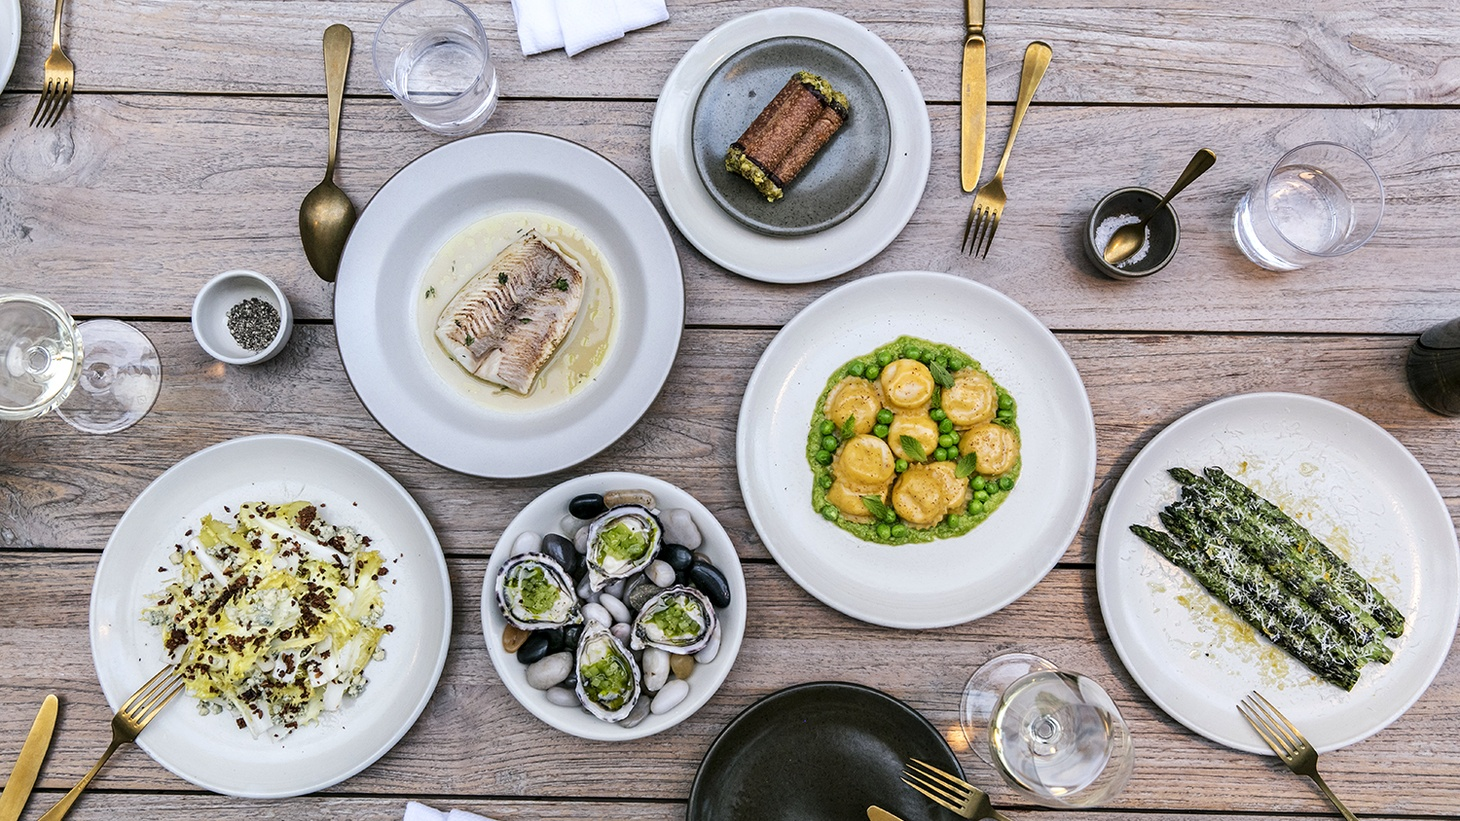 Bill Addison visits Alameda Supper Club at The Manufactory to see whether the restaurant delivers on its promise of elevated Cal-Italian dining.